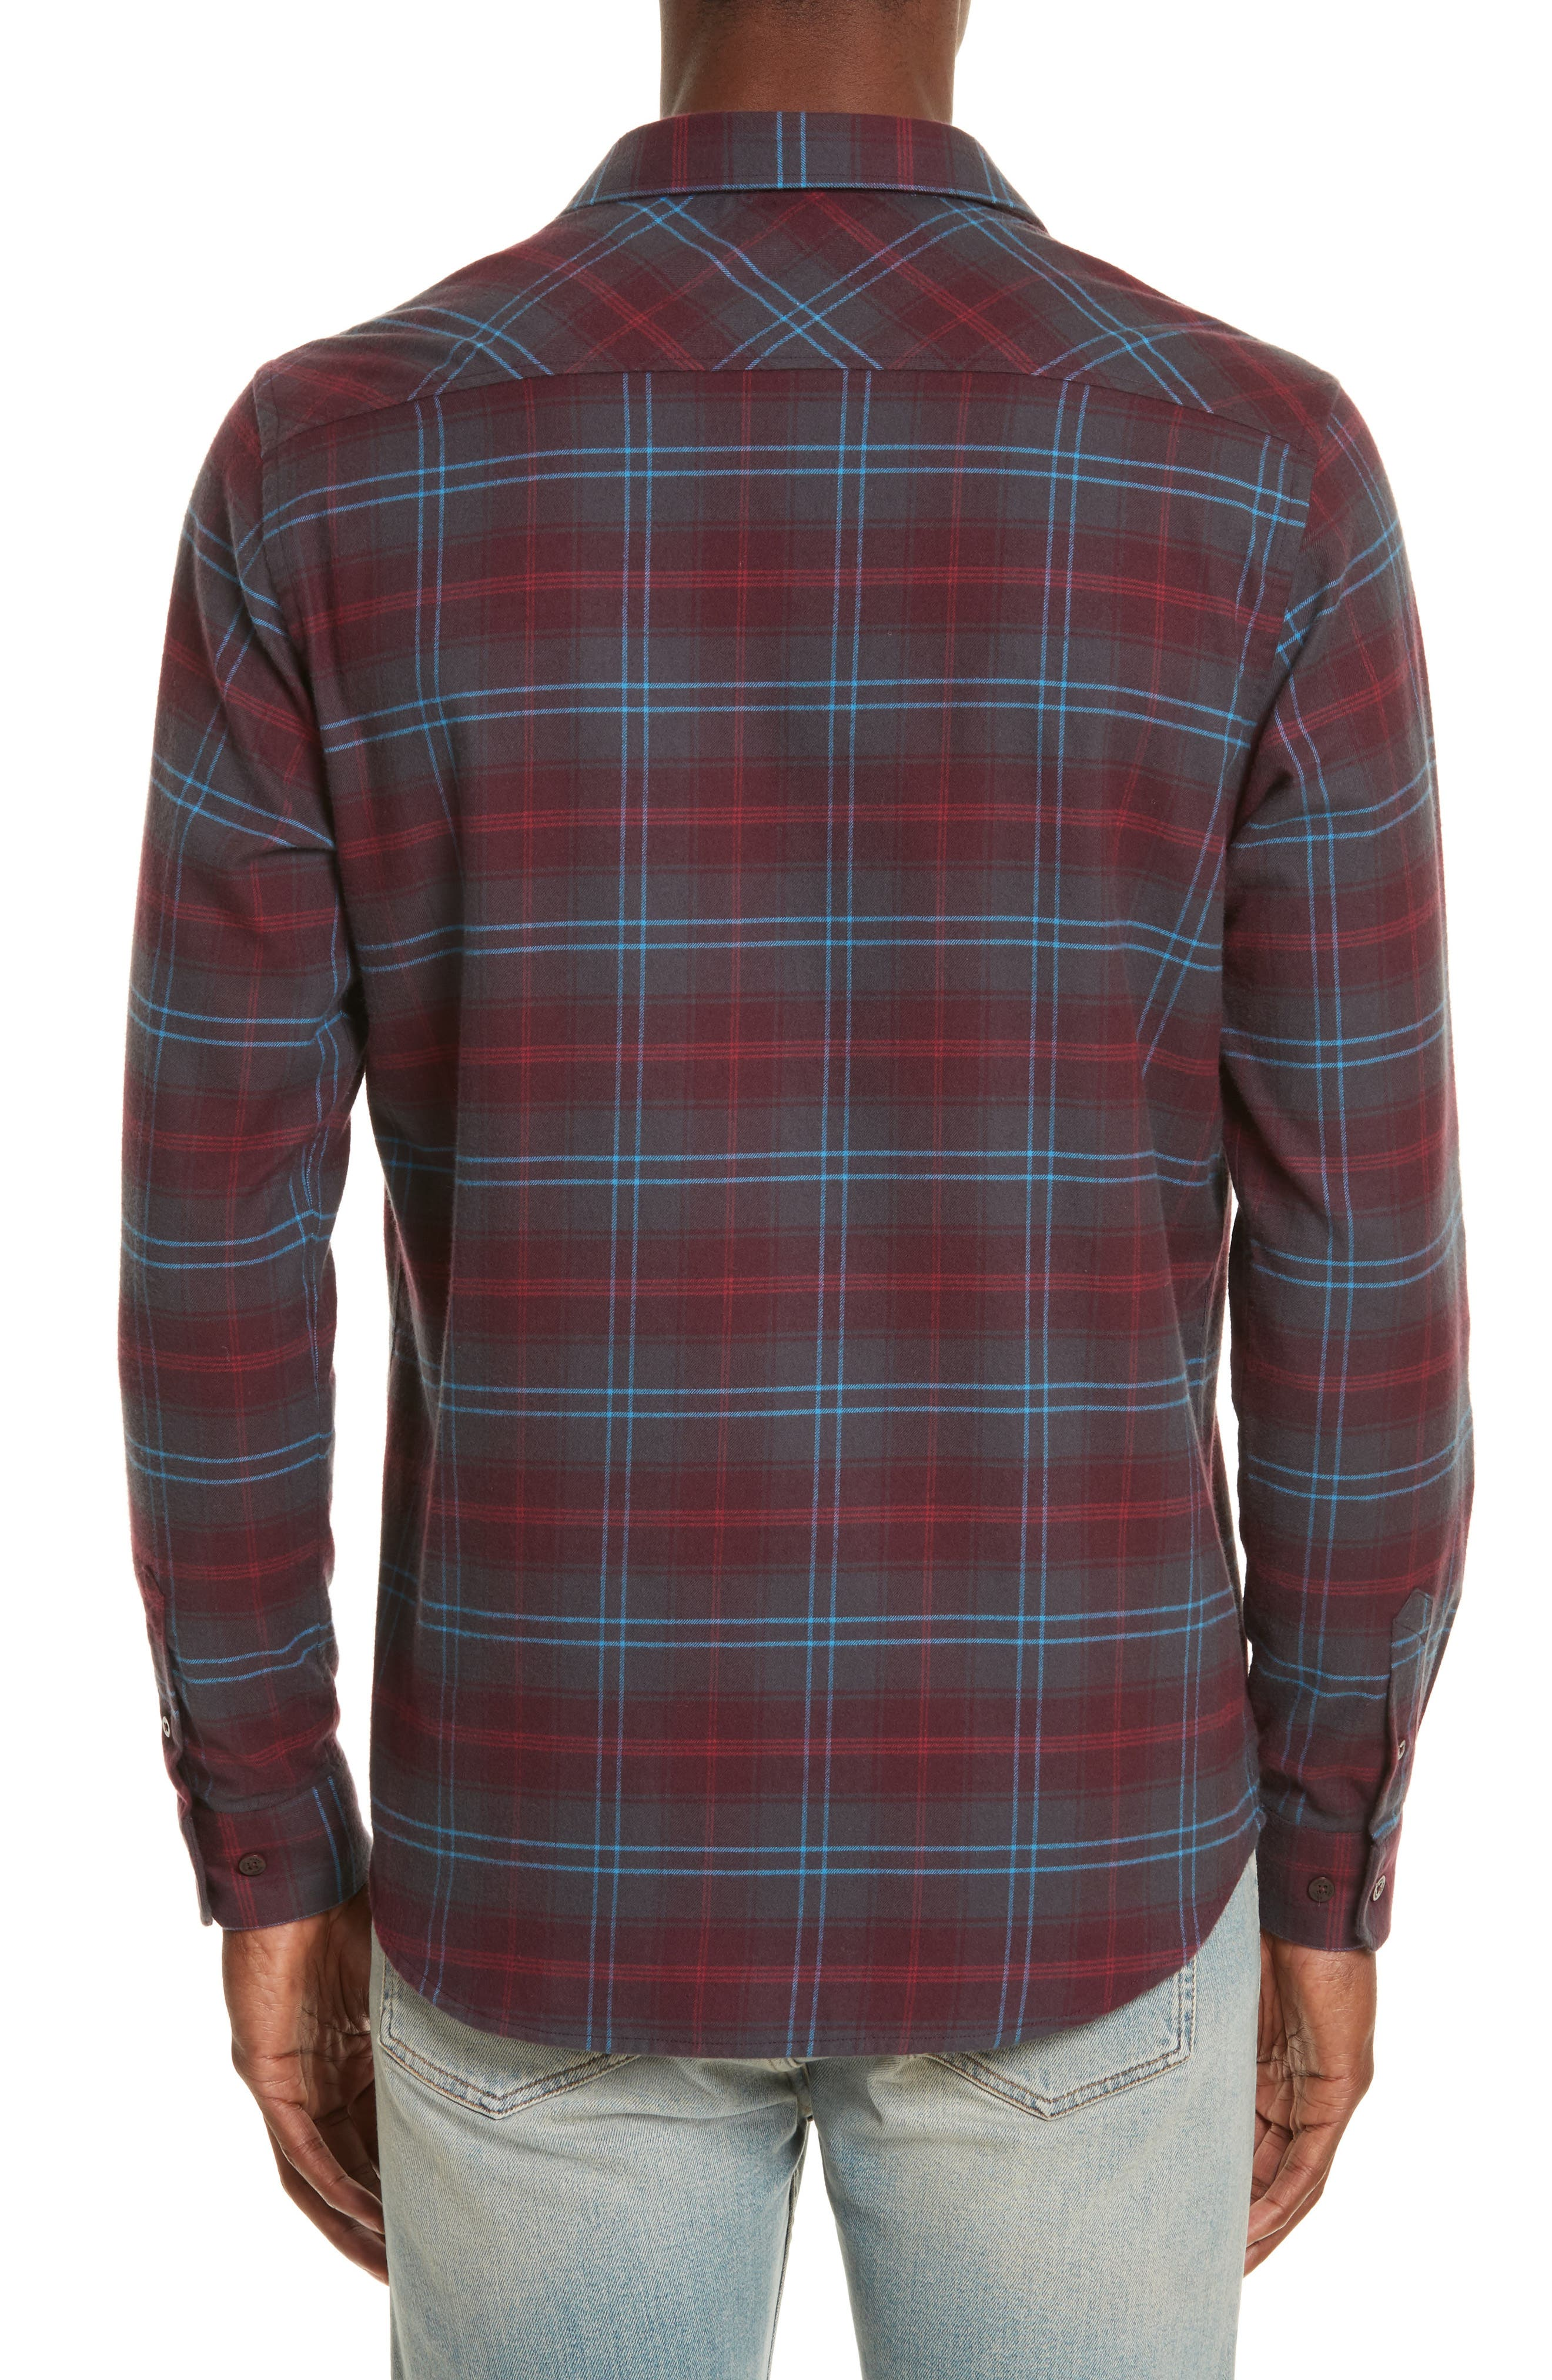 NORSE PROJECTS,                             Hans Brushed Check Shirt,                             Alternate thumbnail 3, color,                             616